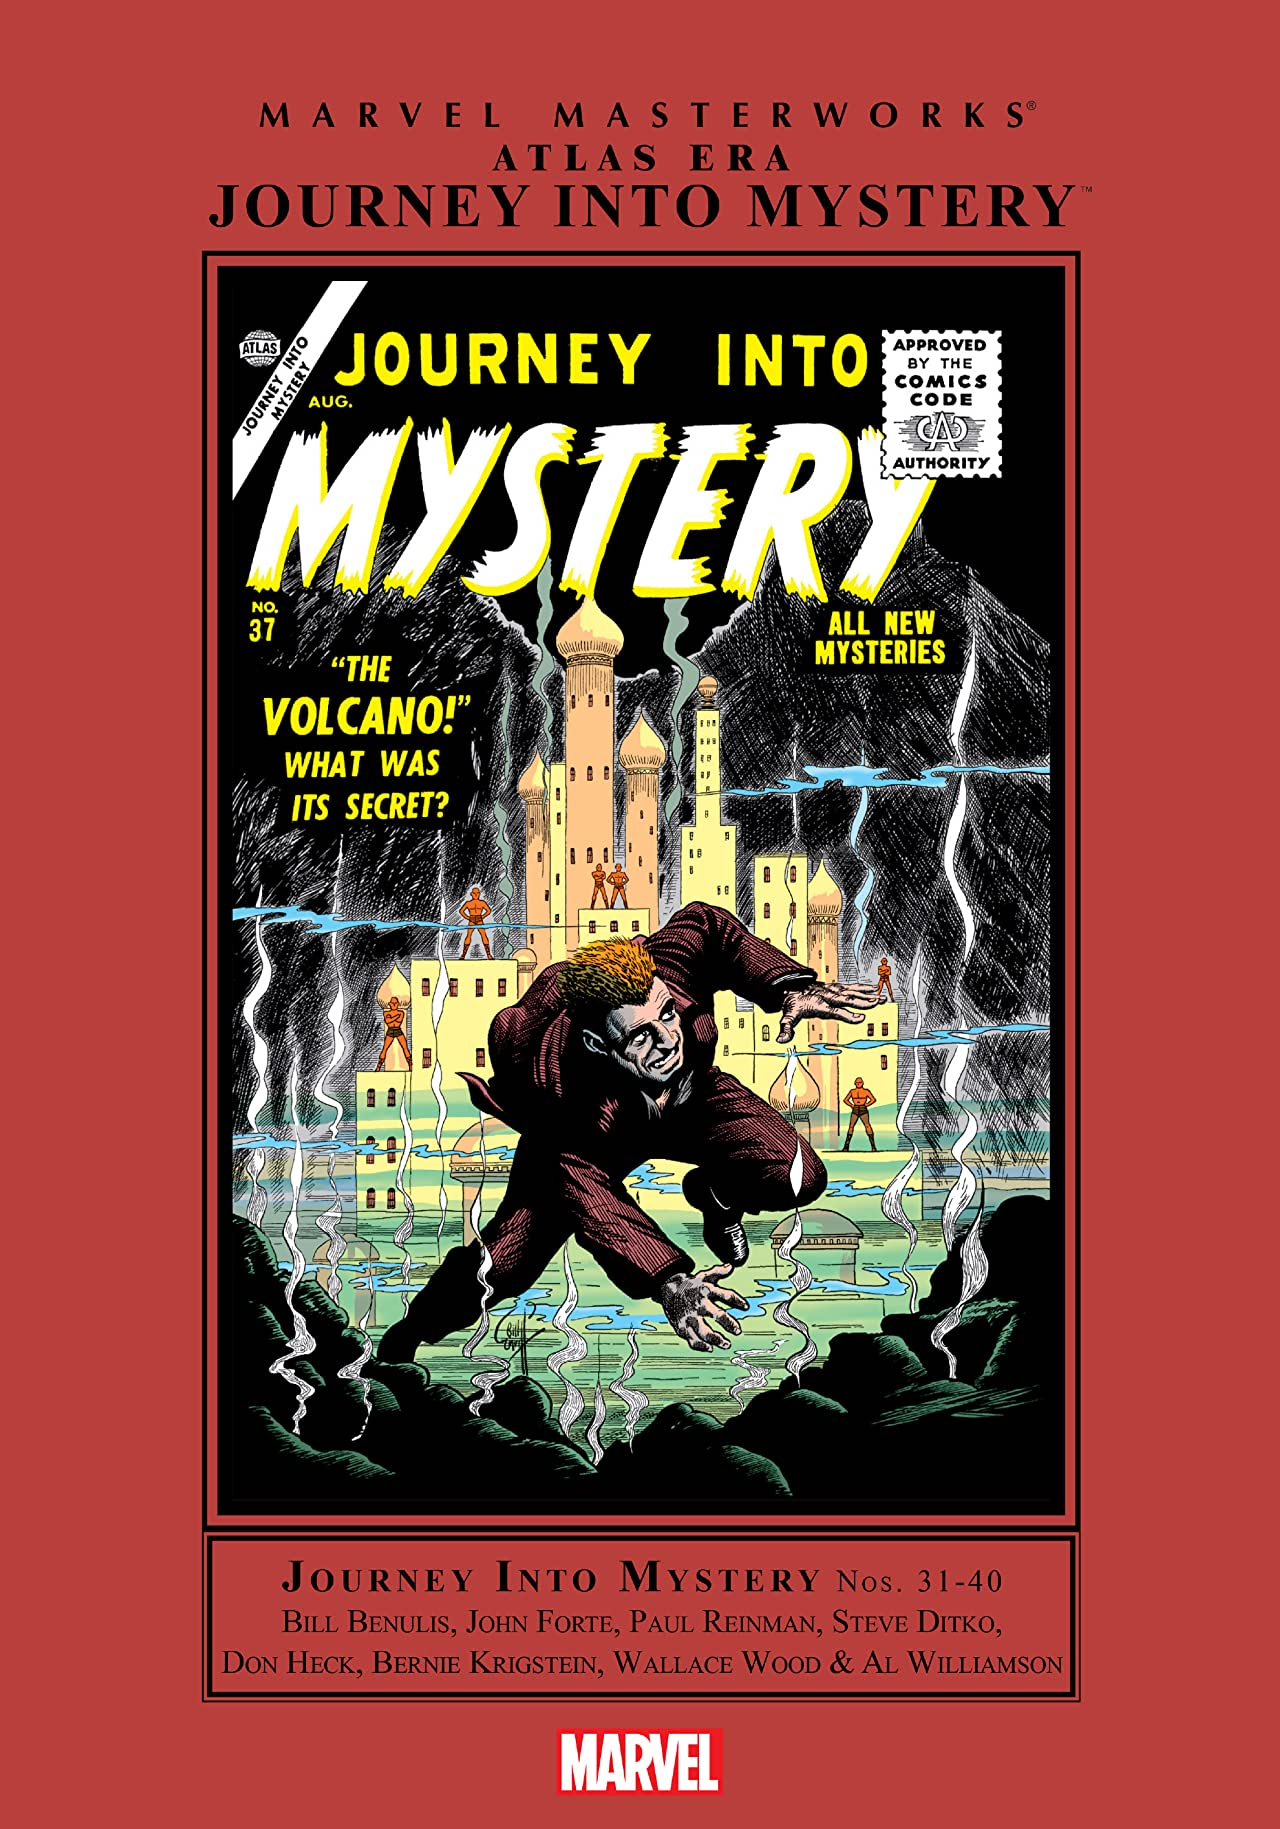 Atlas Era Journey Into Mystery Masterworks Vol. 4